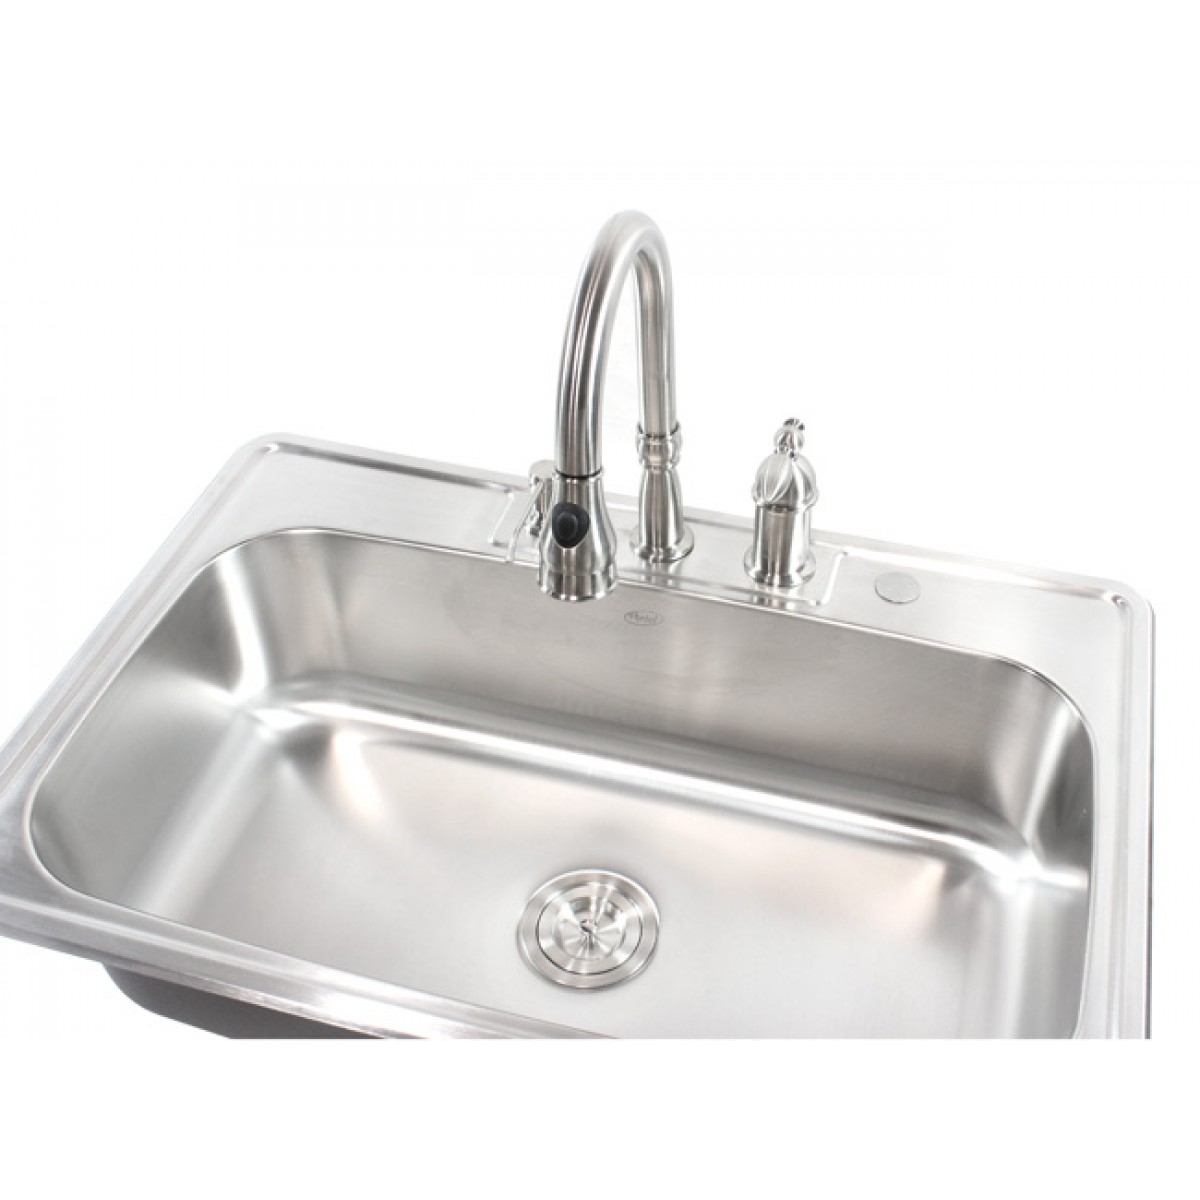 Top Mount Sink Kitchen: 33 Inch Stainless Steel Top Mount Drop In Single Bowl